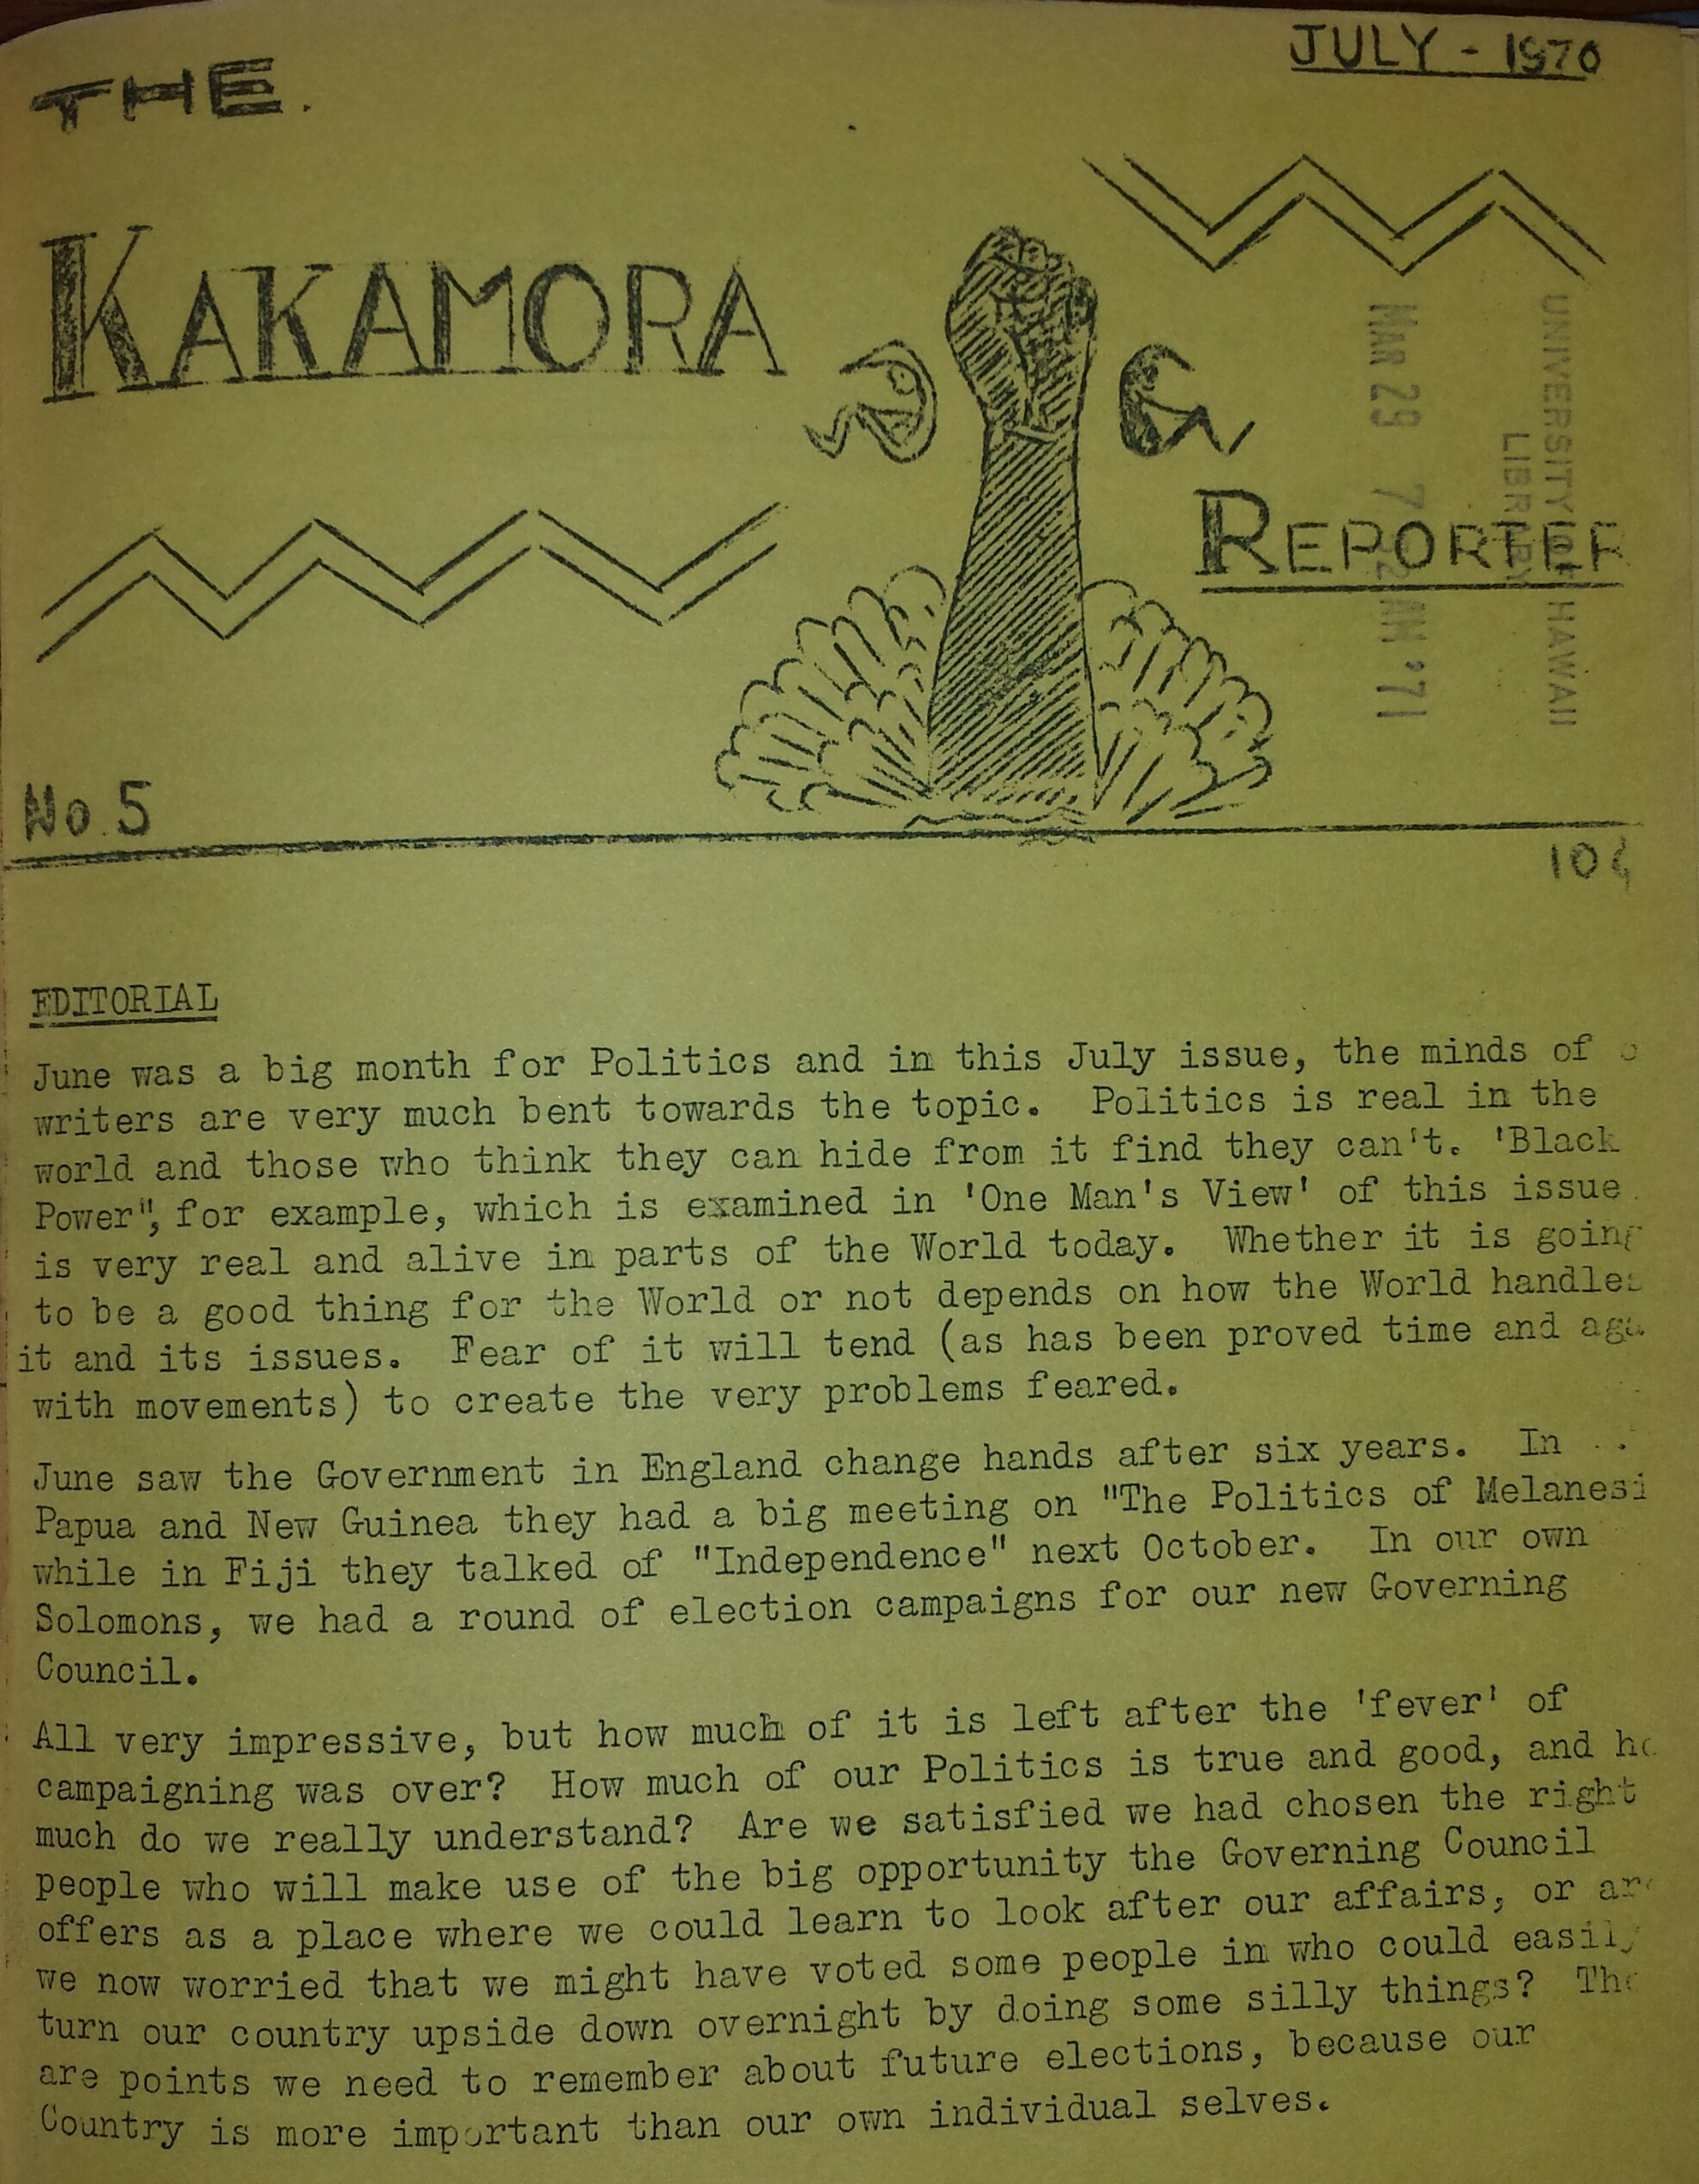 Cover of the 'The Kakamora reporter'